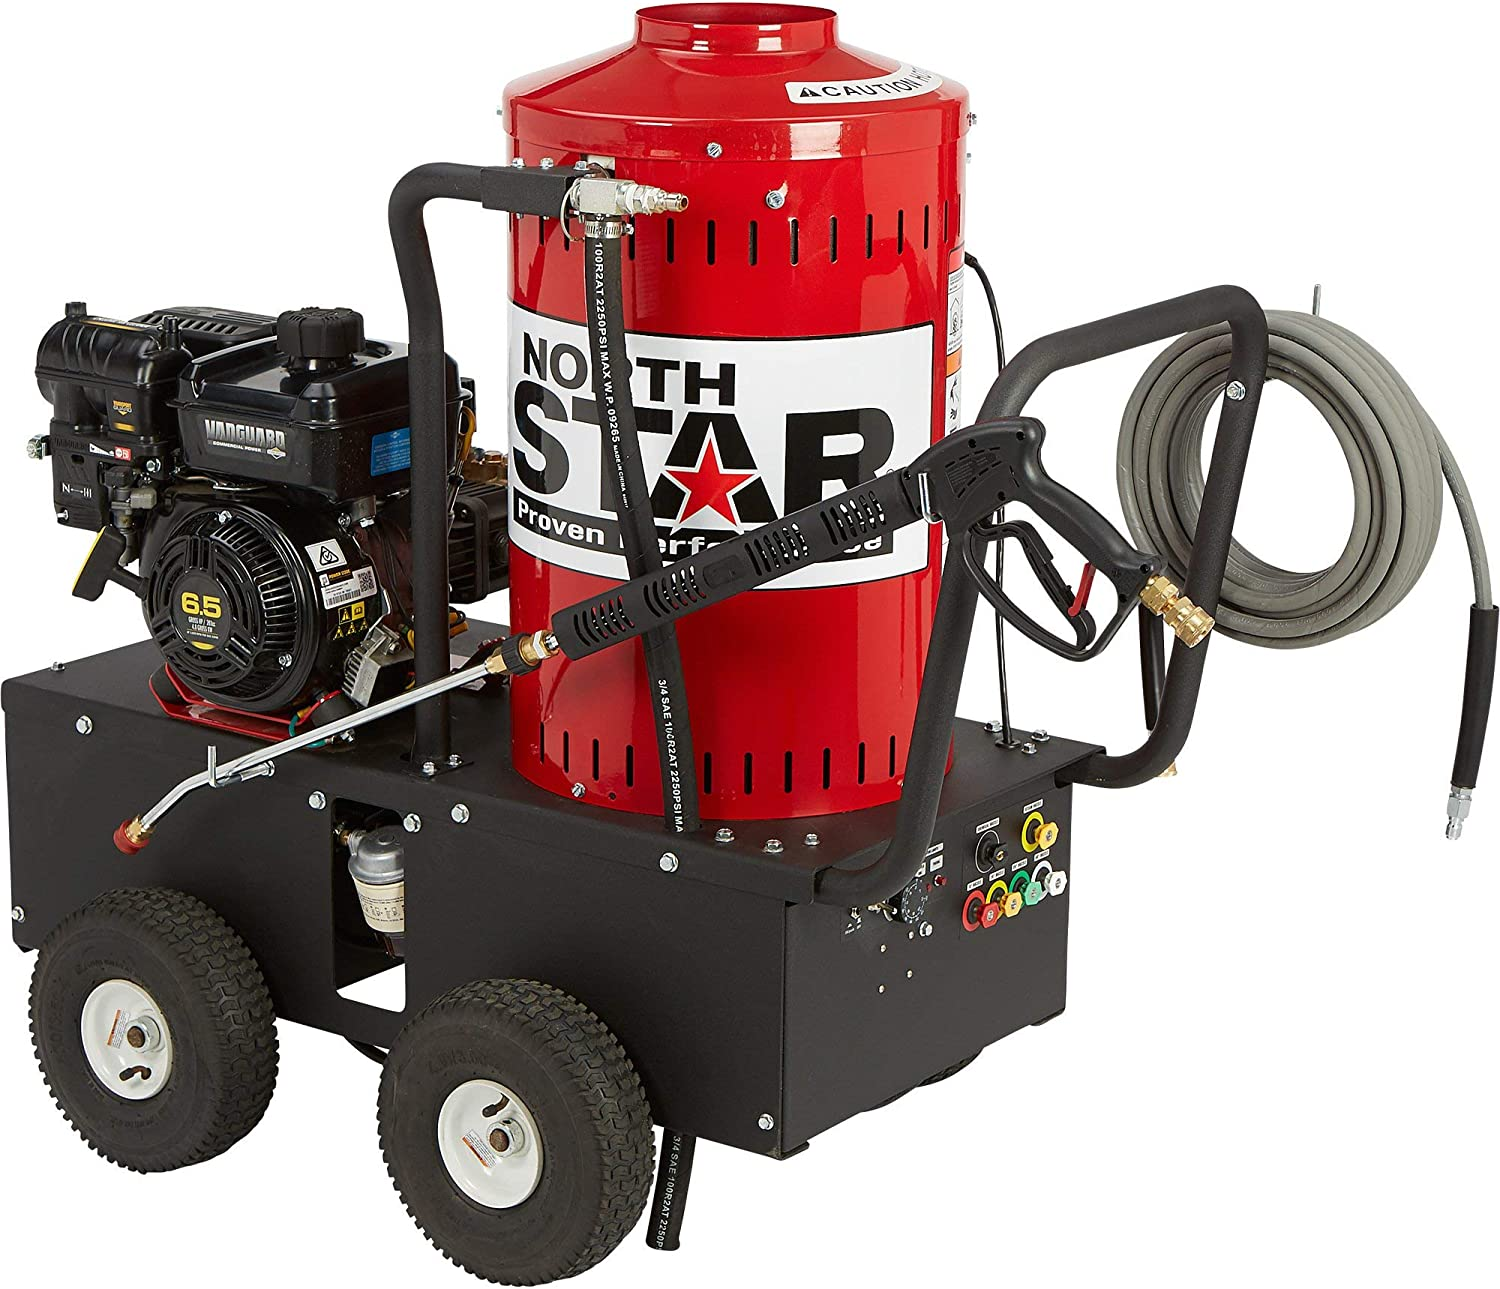 NorthStar Gas Wet Steam and Hot Water Pressure Washer - 2700 PSI, 2.5 GPM, Briggs & Stratton Engine